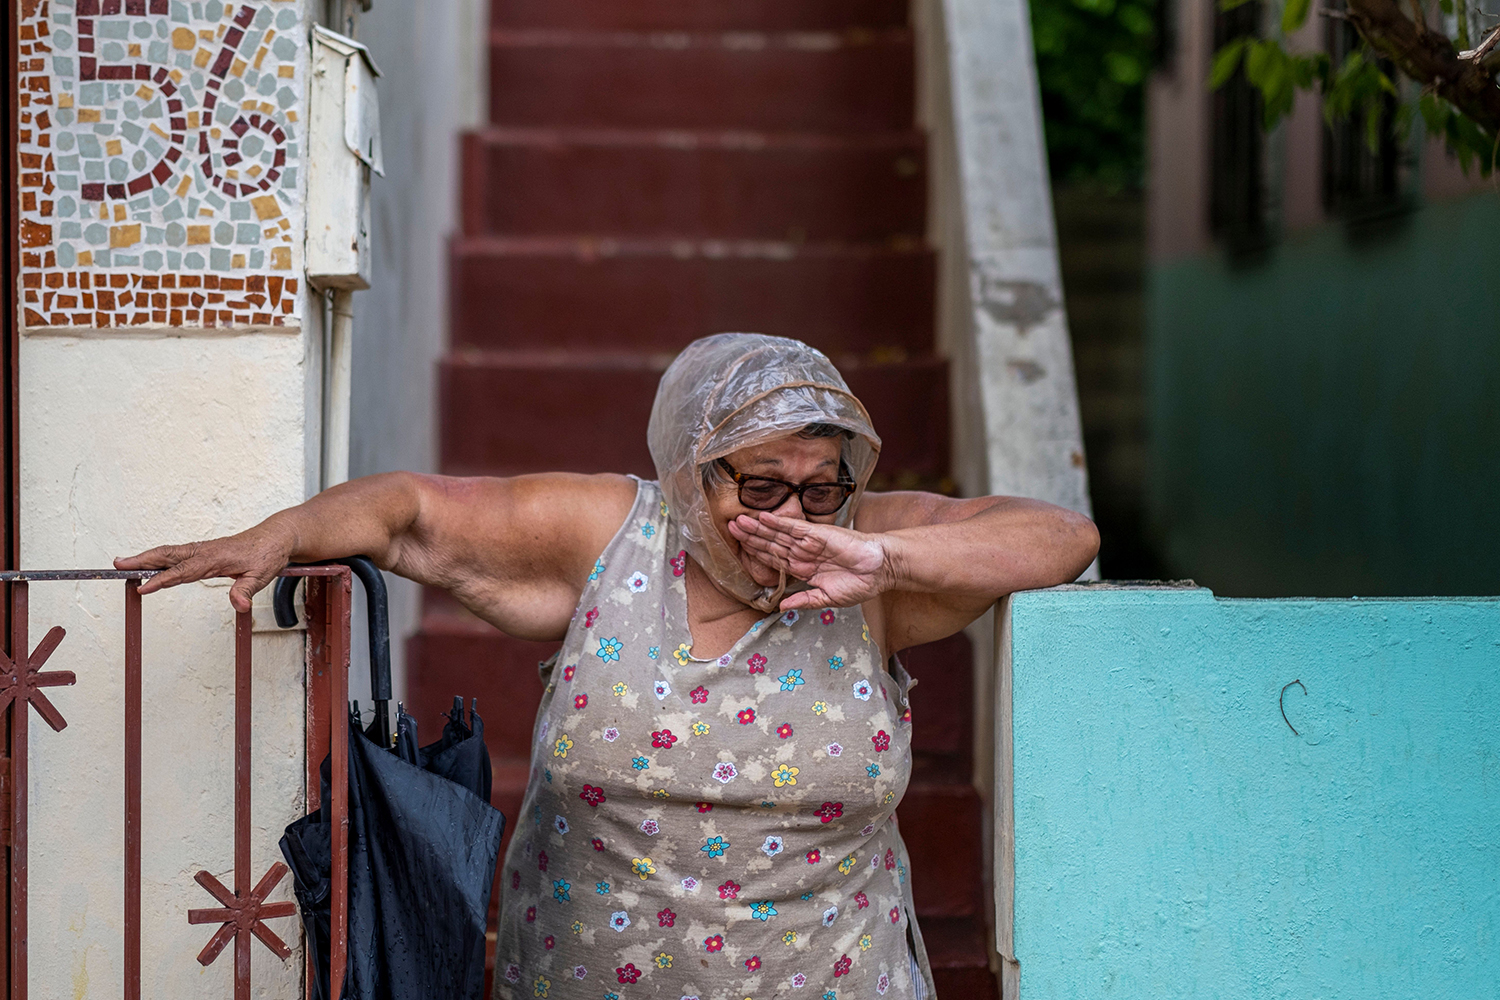 A woman stands on her porch in Mayaguez, Puerto Rico, on July 30 after Tropical Storm Isaias blew through the area. RICARDO ARDUENGO/AFP via Getty Images